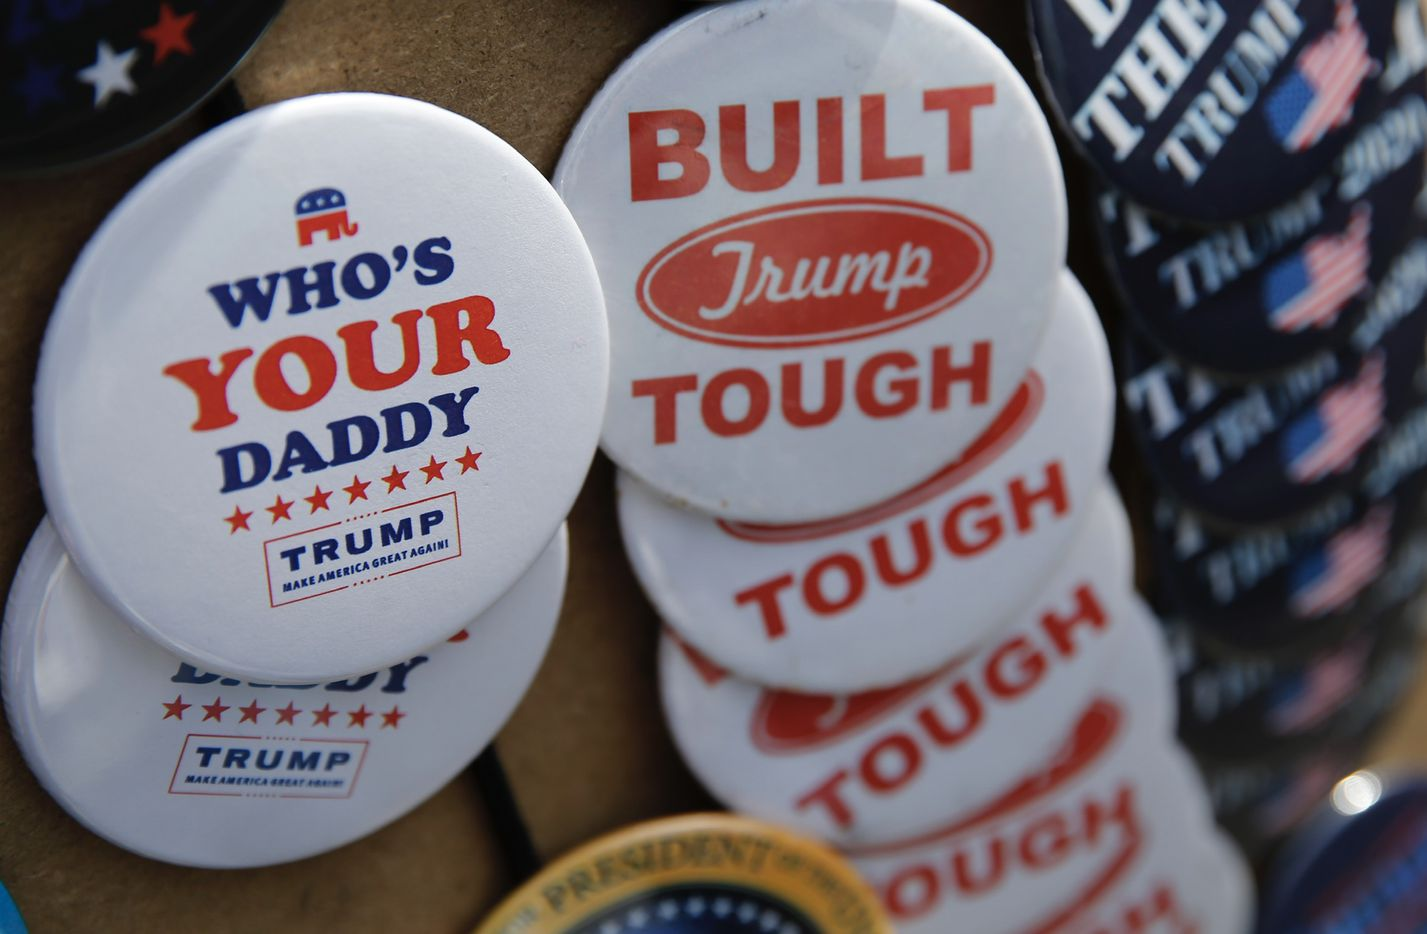 Products available for purchase outside the Keep America Great Rally for President Donald Trump at the American Airlines Center in Dallas, on Thursday, October 17, 2019.